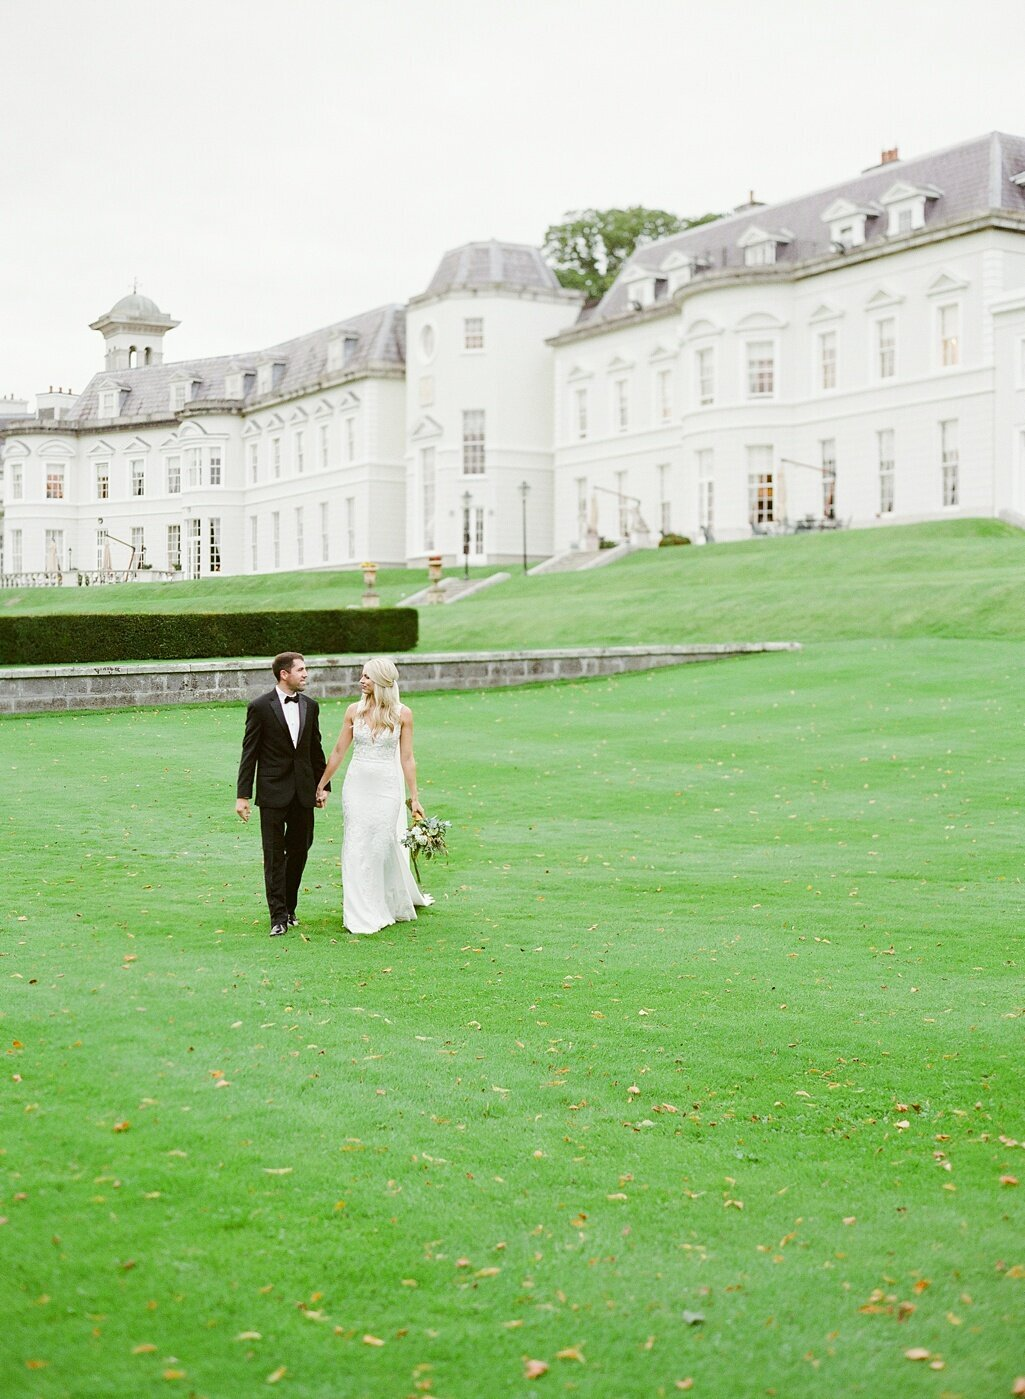 Jessie-Barksdale-Photography_K-Club-Ireland-Destination-Wedding-Photographer_0007